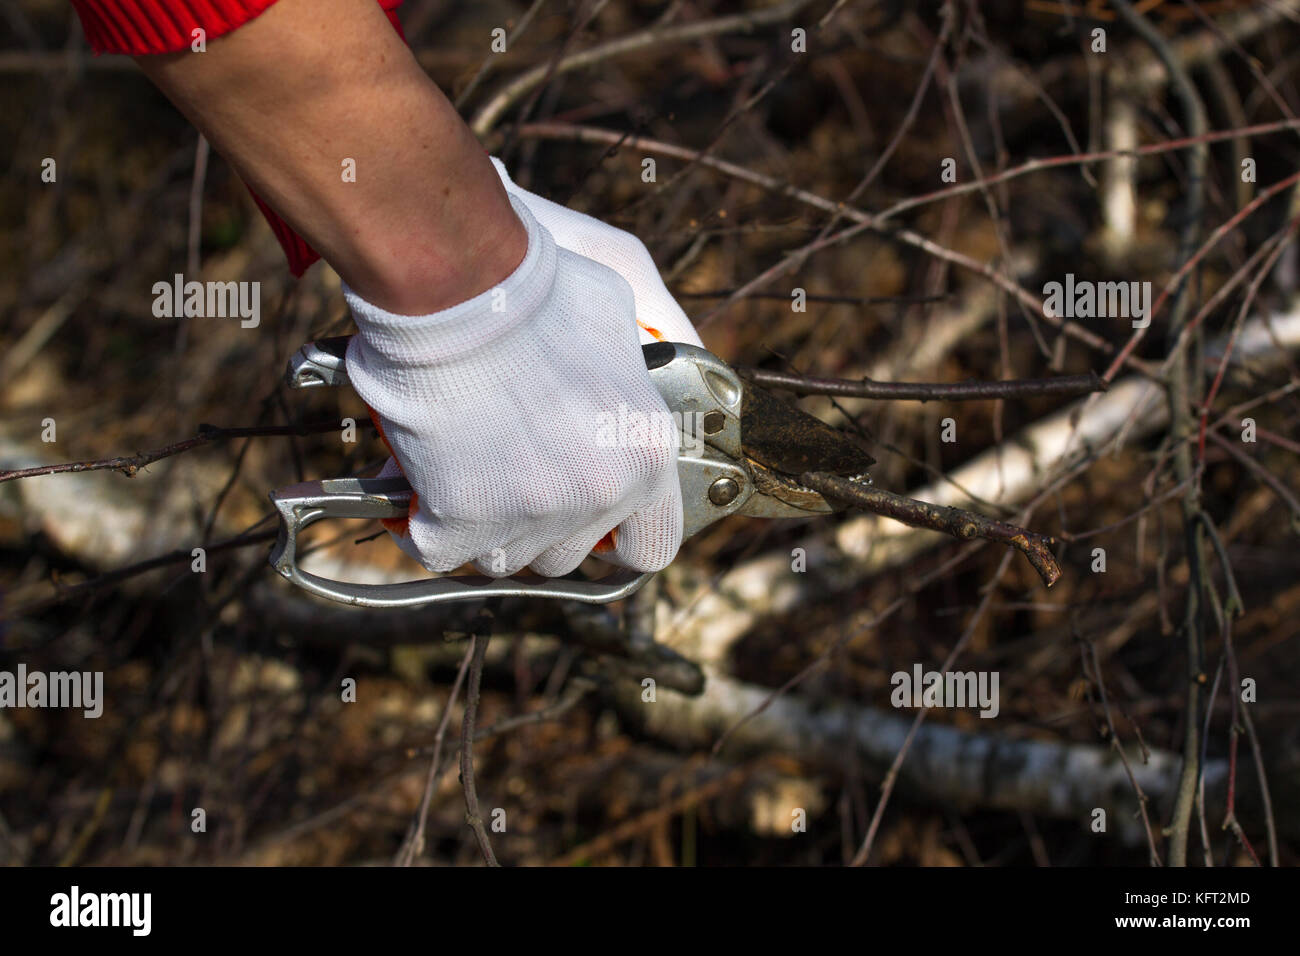 Gardener hands pruning cultivar garden branches with a garden secateurs in the autumn garden Stock Photo